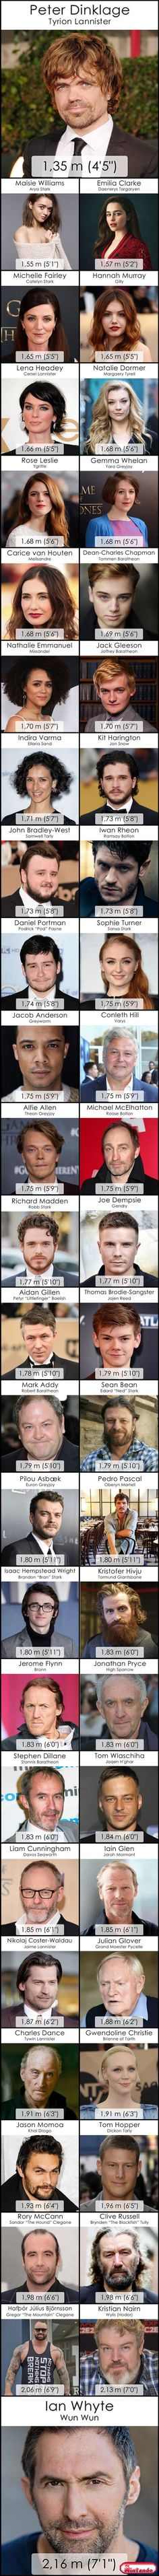 Actor height reference.